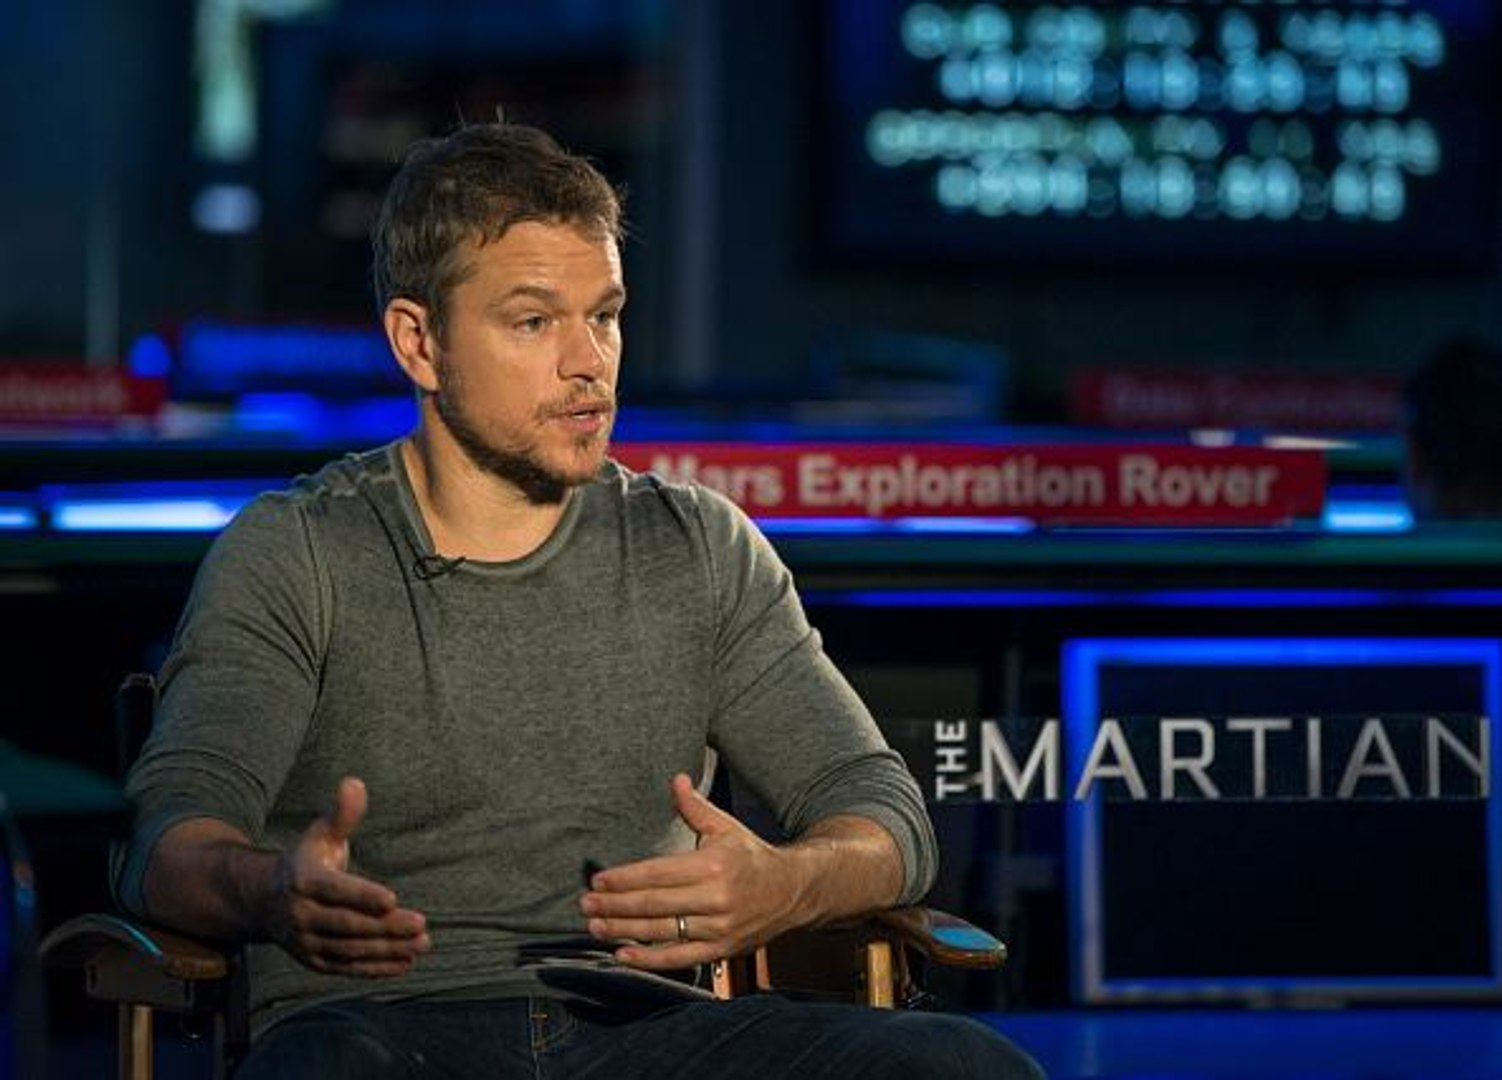 Thrills, humor help lure Damon back into space for 'The Martian'